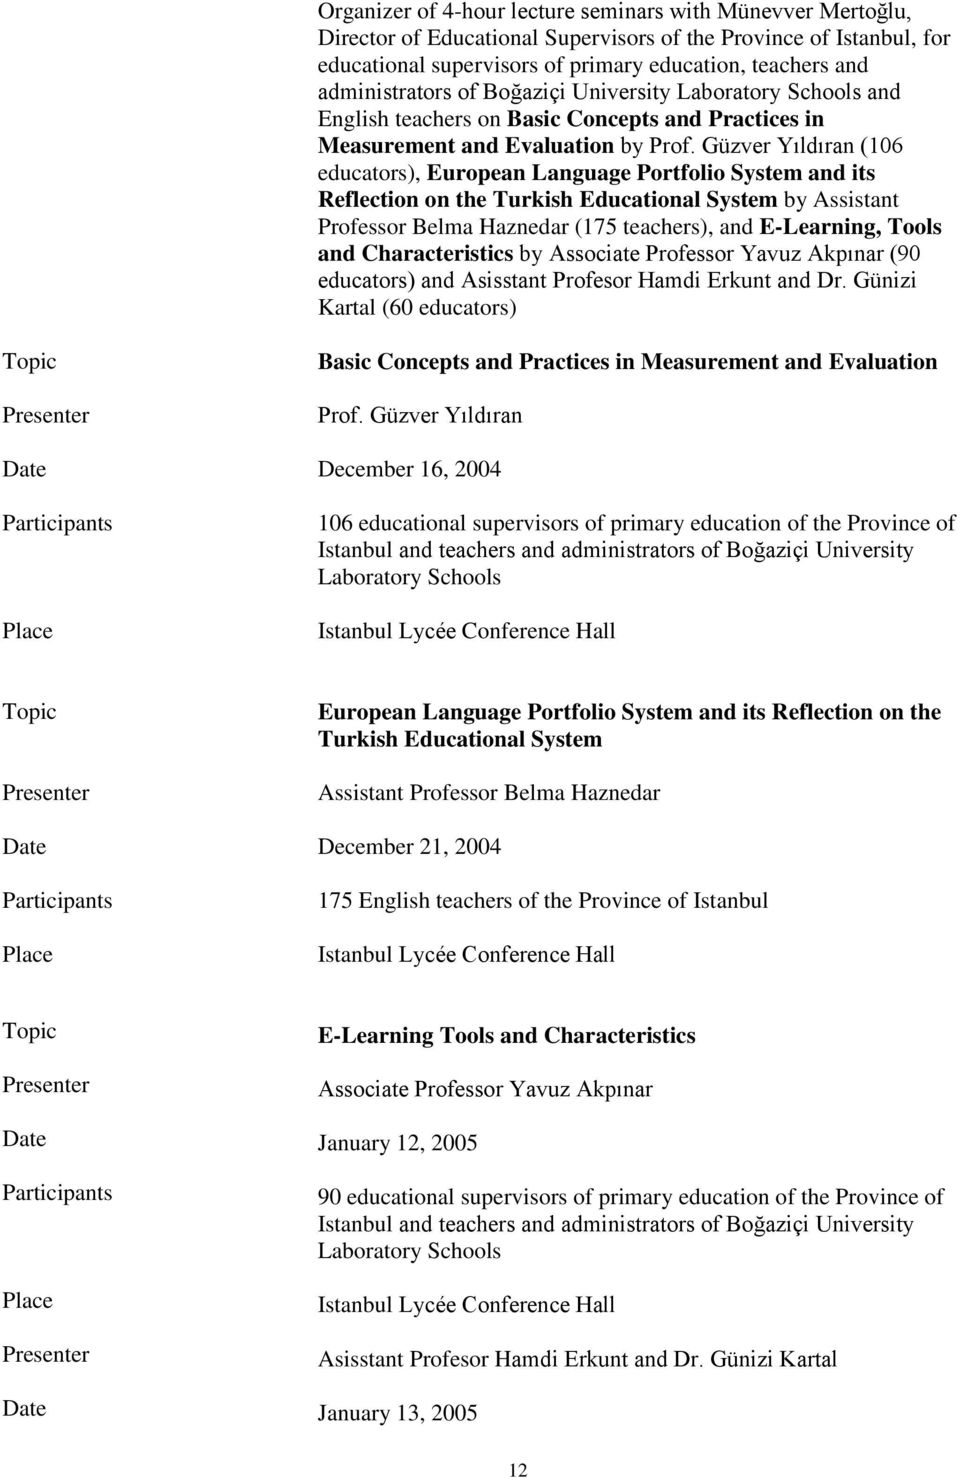 Güzver Yıldıran (106 educators), European Language Portfolio System and its Reflection on the Turkish Educational System by Assistant Professor Belma Haznedar (175 teachers), and E-Learning, Tools